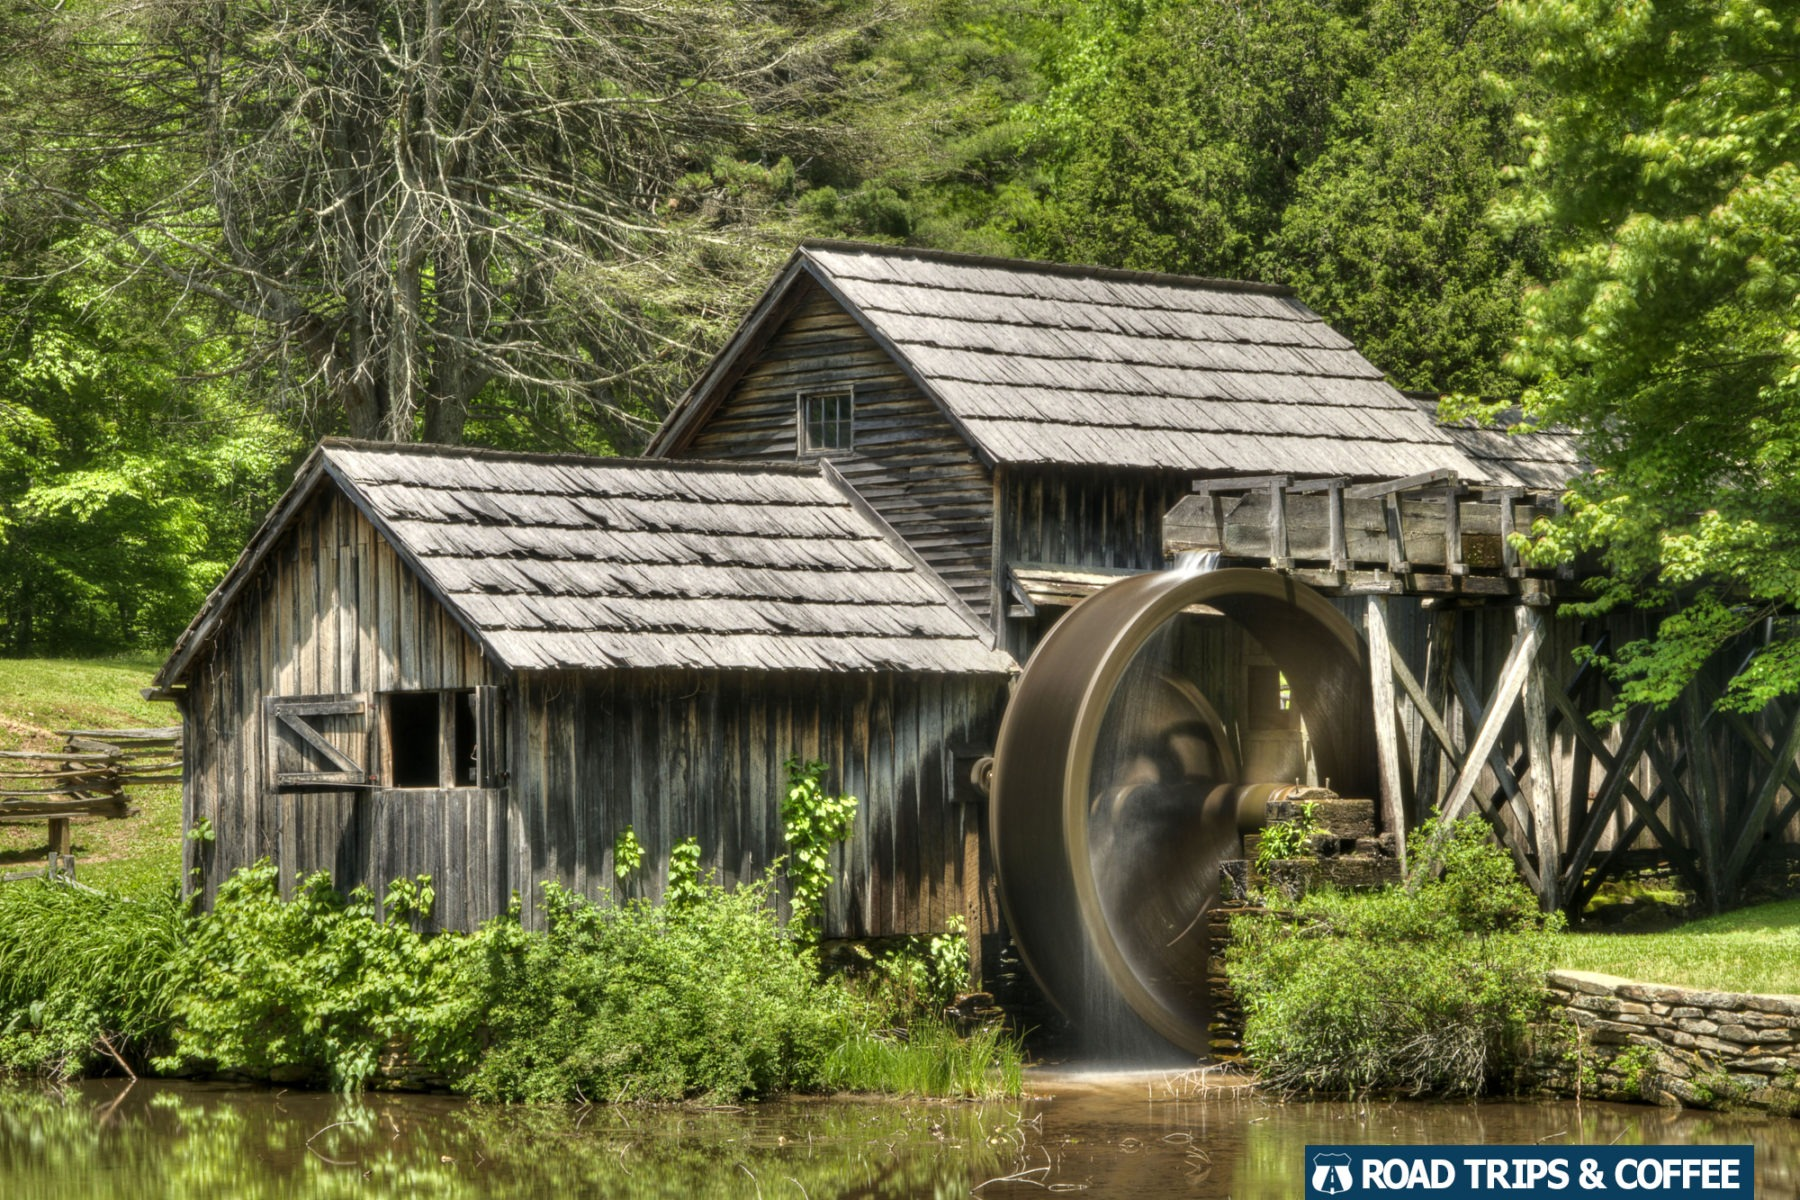 The spinning wheel of Mabry Mill on the edge of a pond along the Blue Ridge Parkway in Virginia